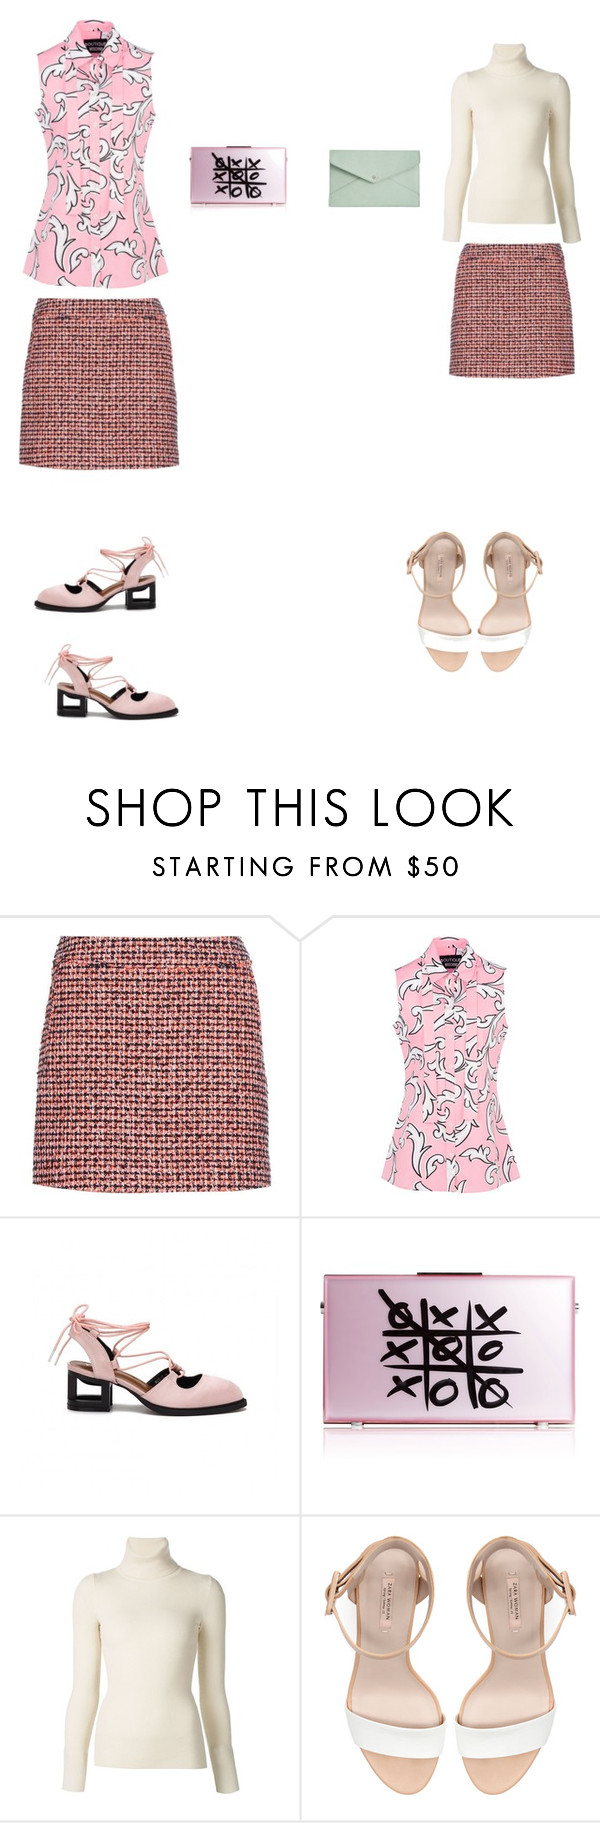 """""""Untitled #427"""" by aayushis ❤ liked on Polyvore featuring dVb Victoria Beckham, Boutique Moschino, xO Design, Emanuel Ungaro, Zara and Danielle Nicole"""